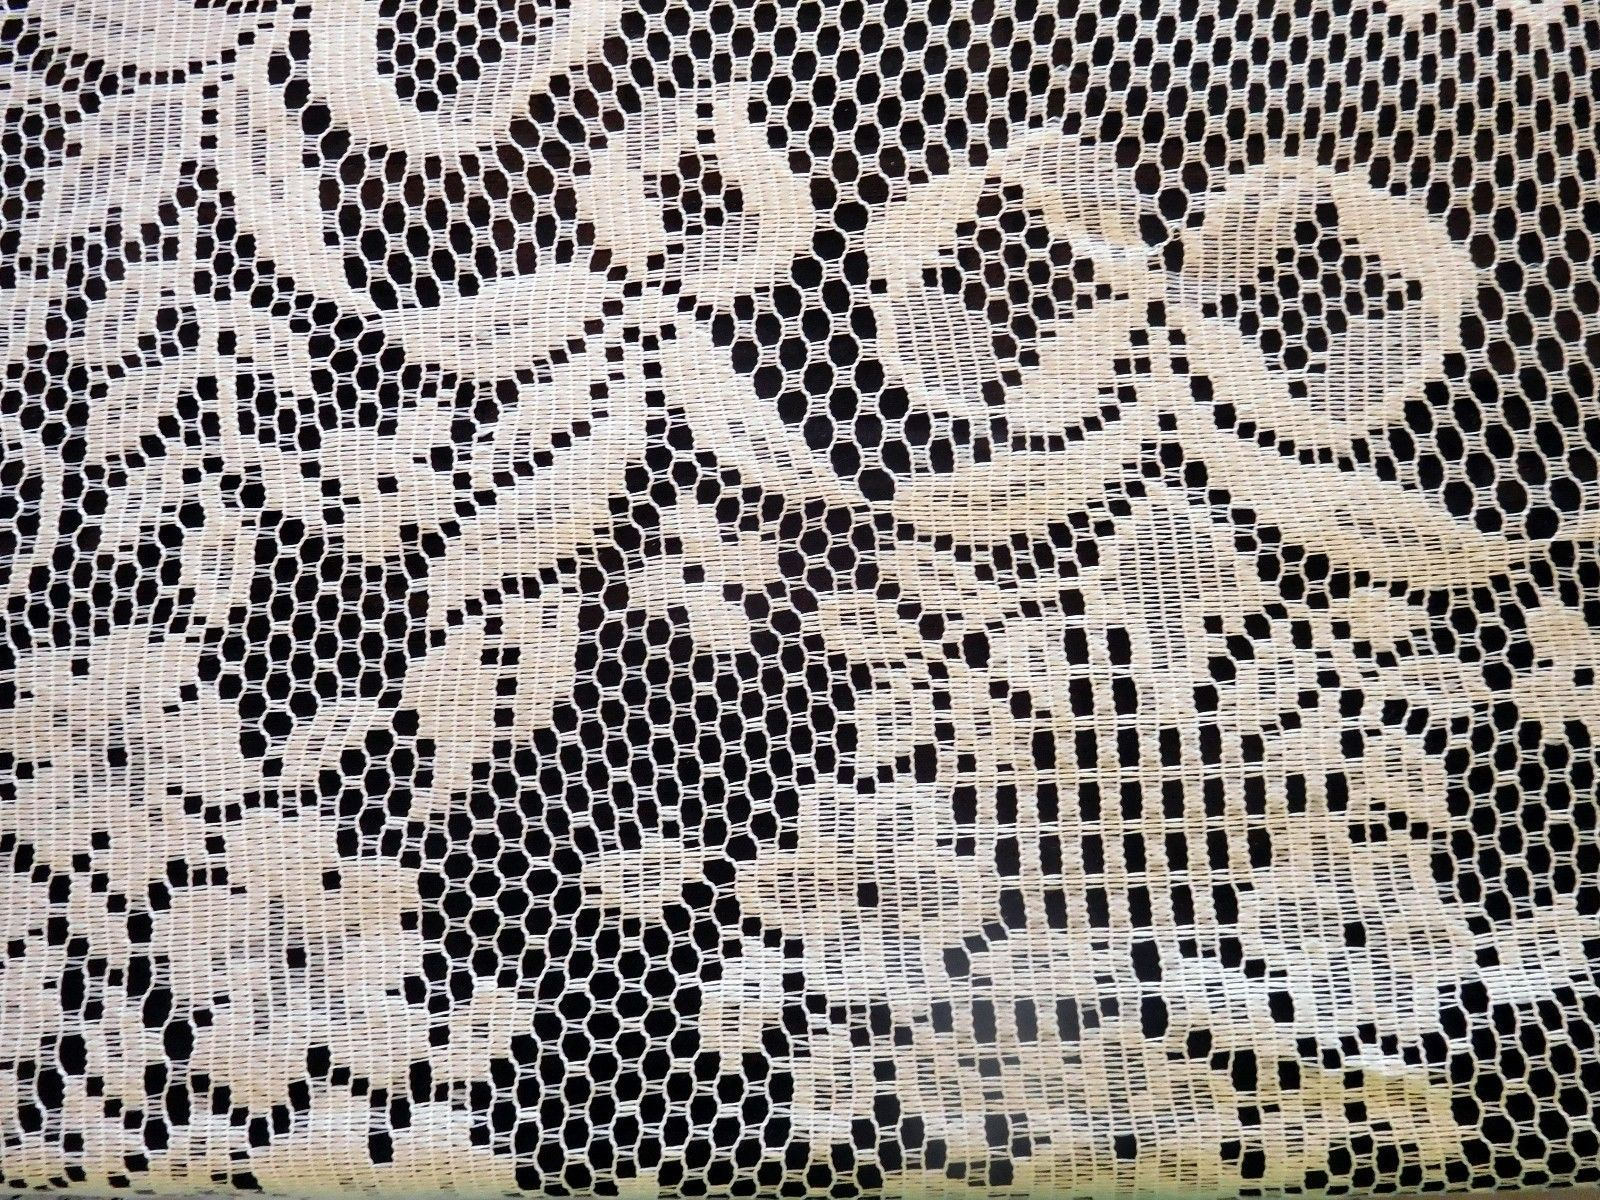 """TABLECLOTH White Cutout Lace Floral Design 71"""" X 82""""  Exc Pre-Owned (CC)"""